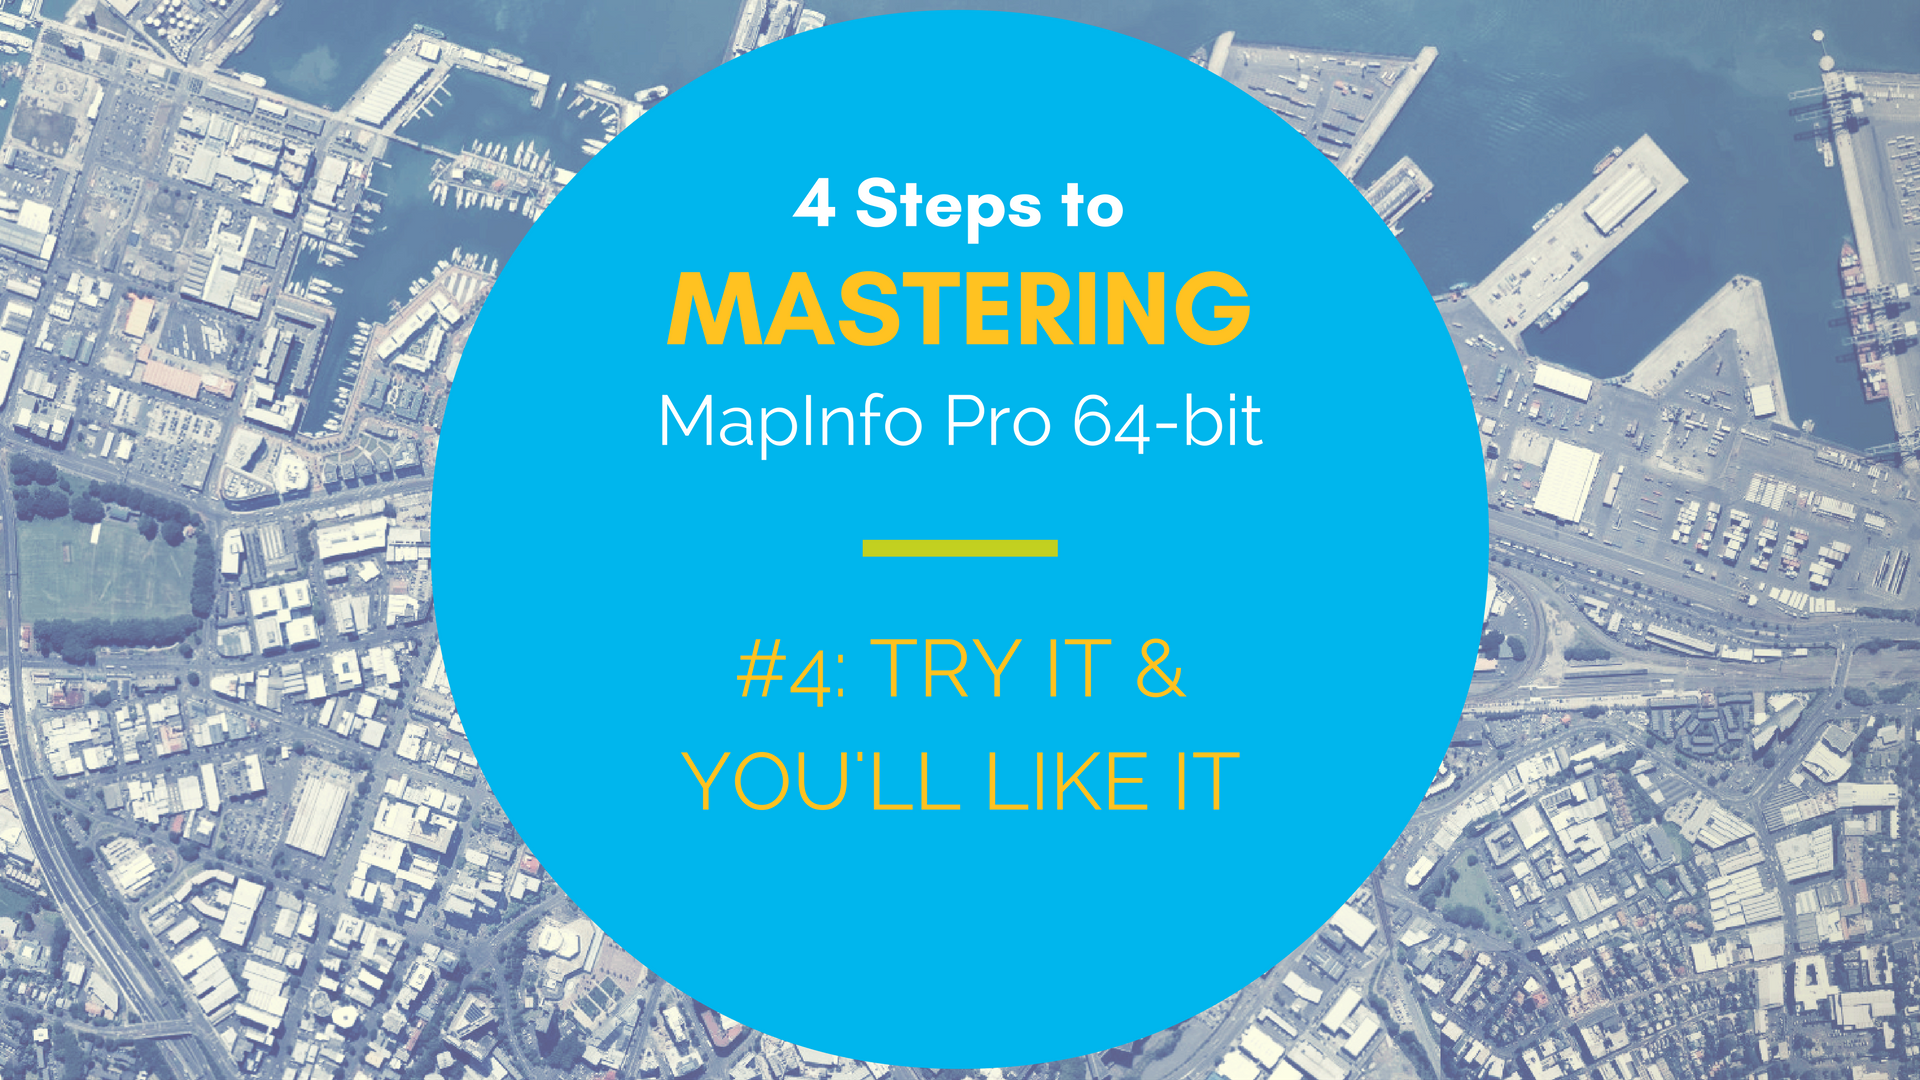 Mastering MapInfo Pro 64-bit - #4 The Best of Old and New